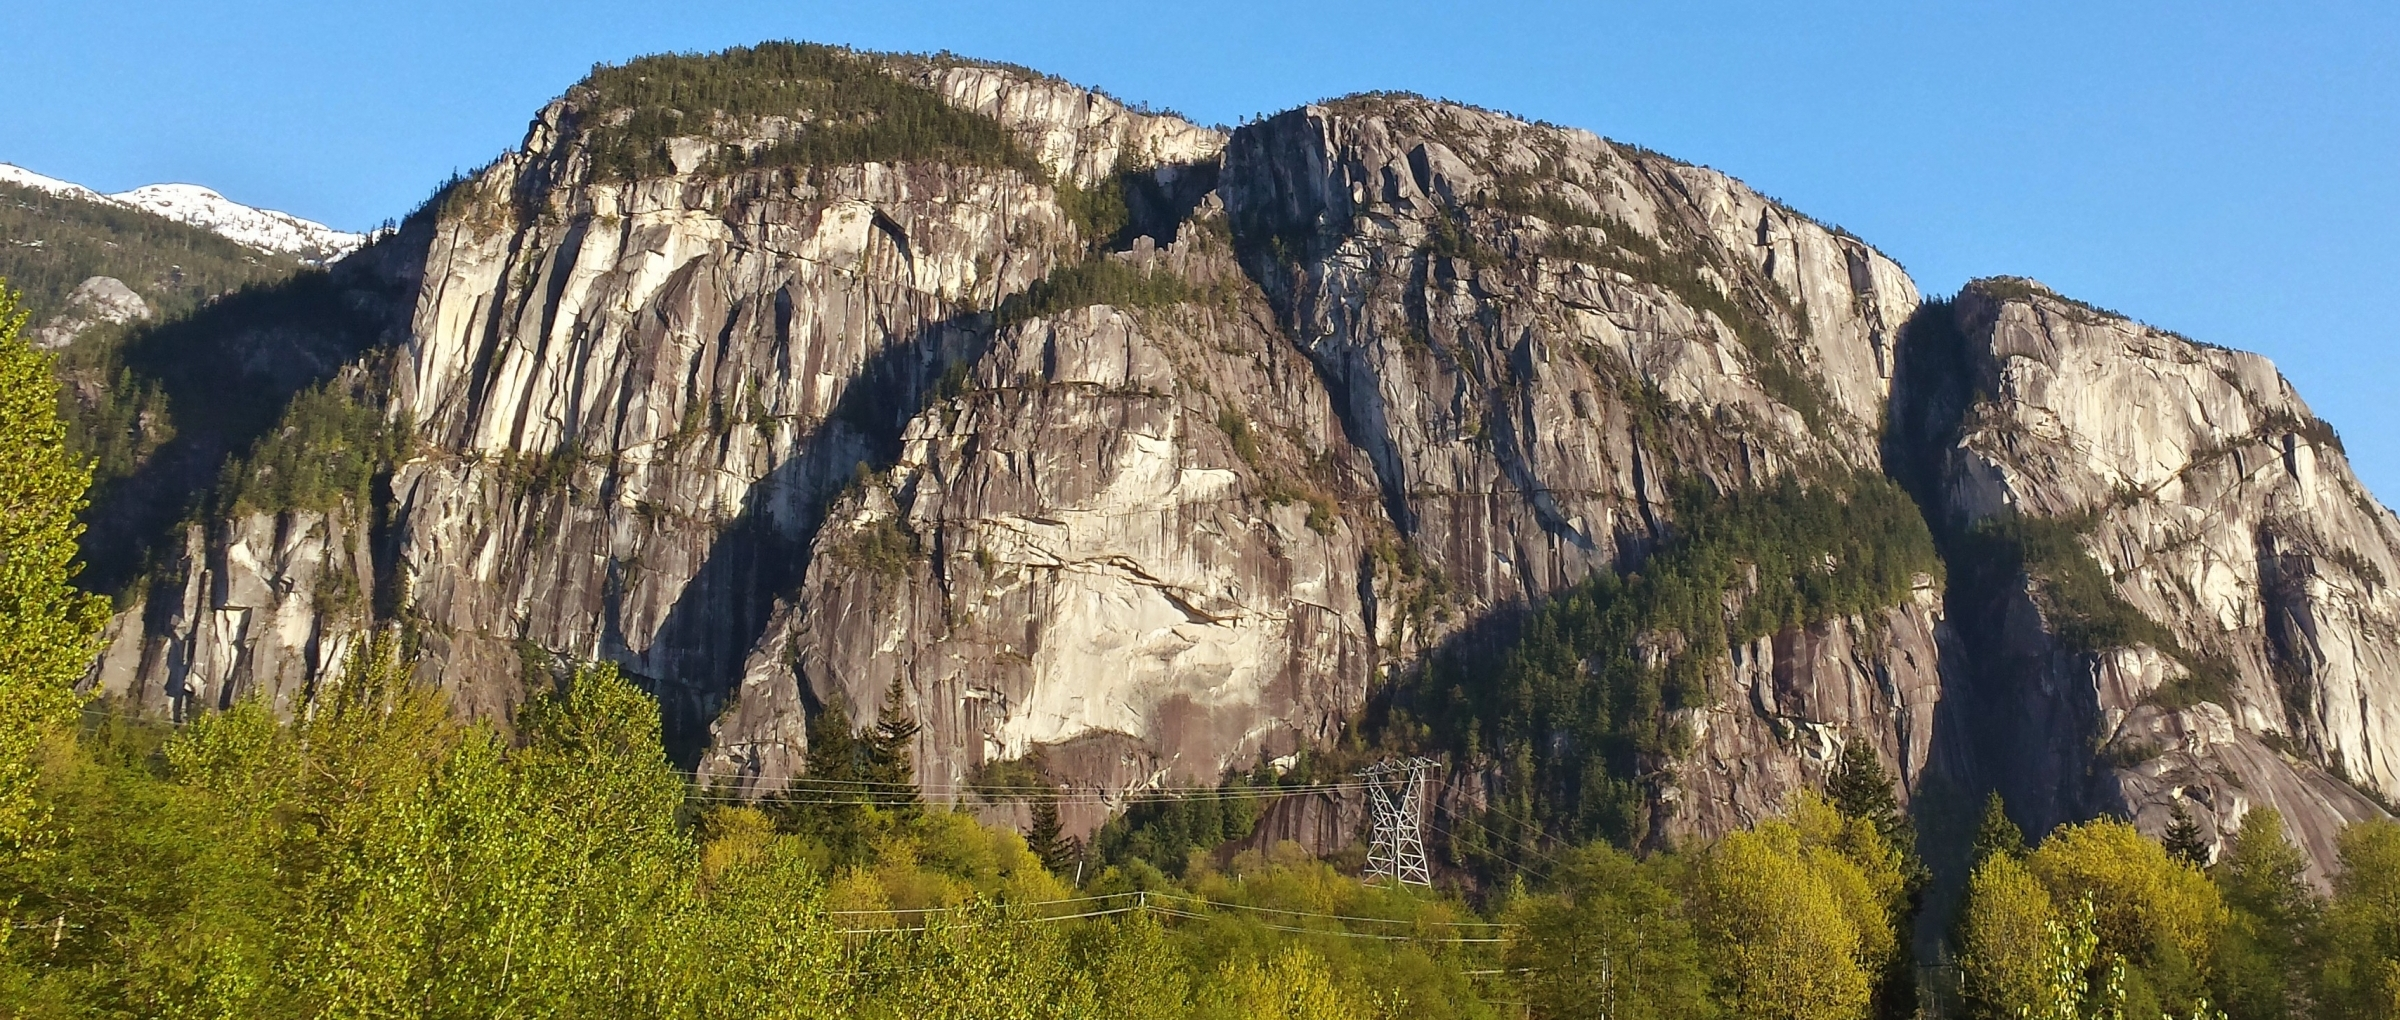 Homes in Squamish